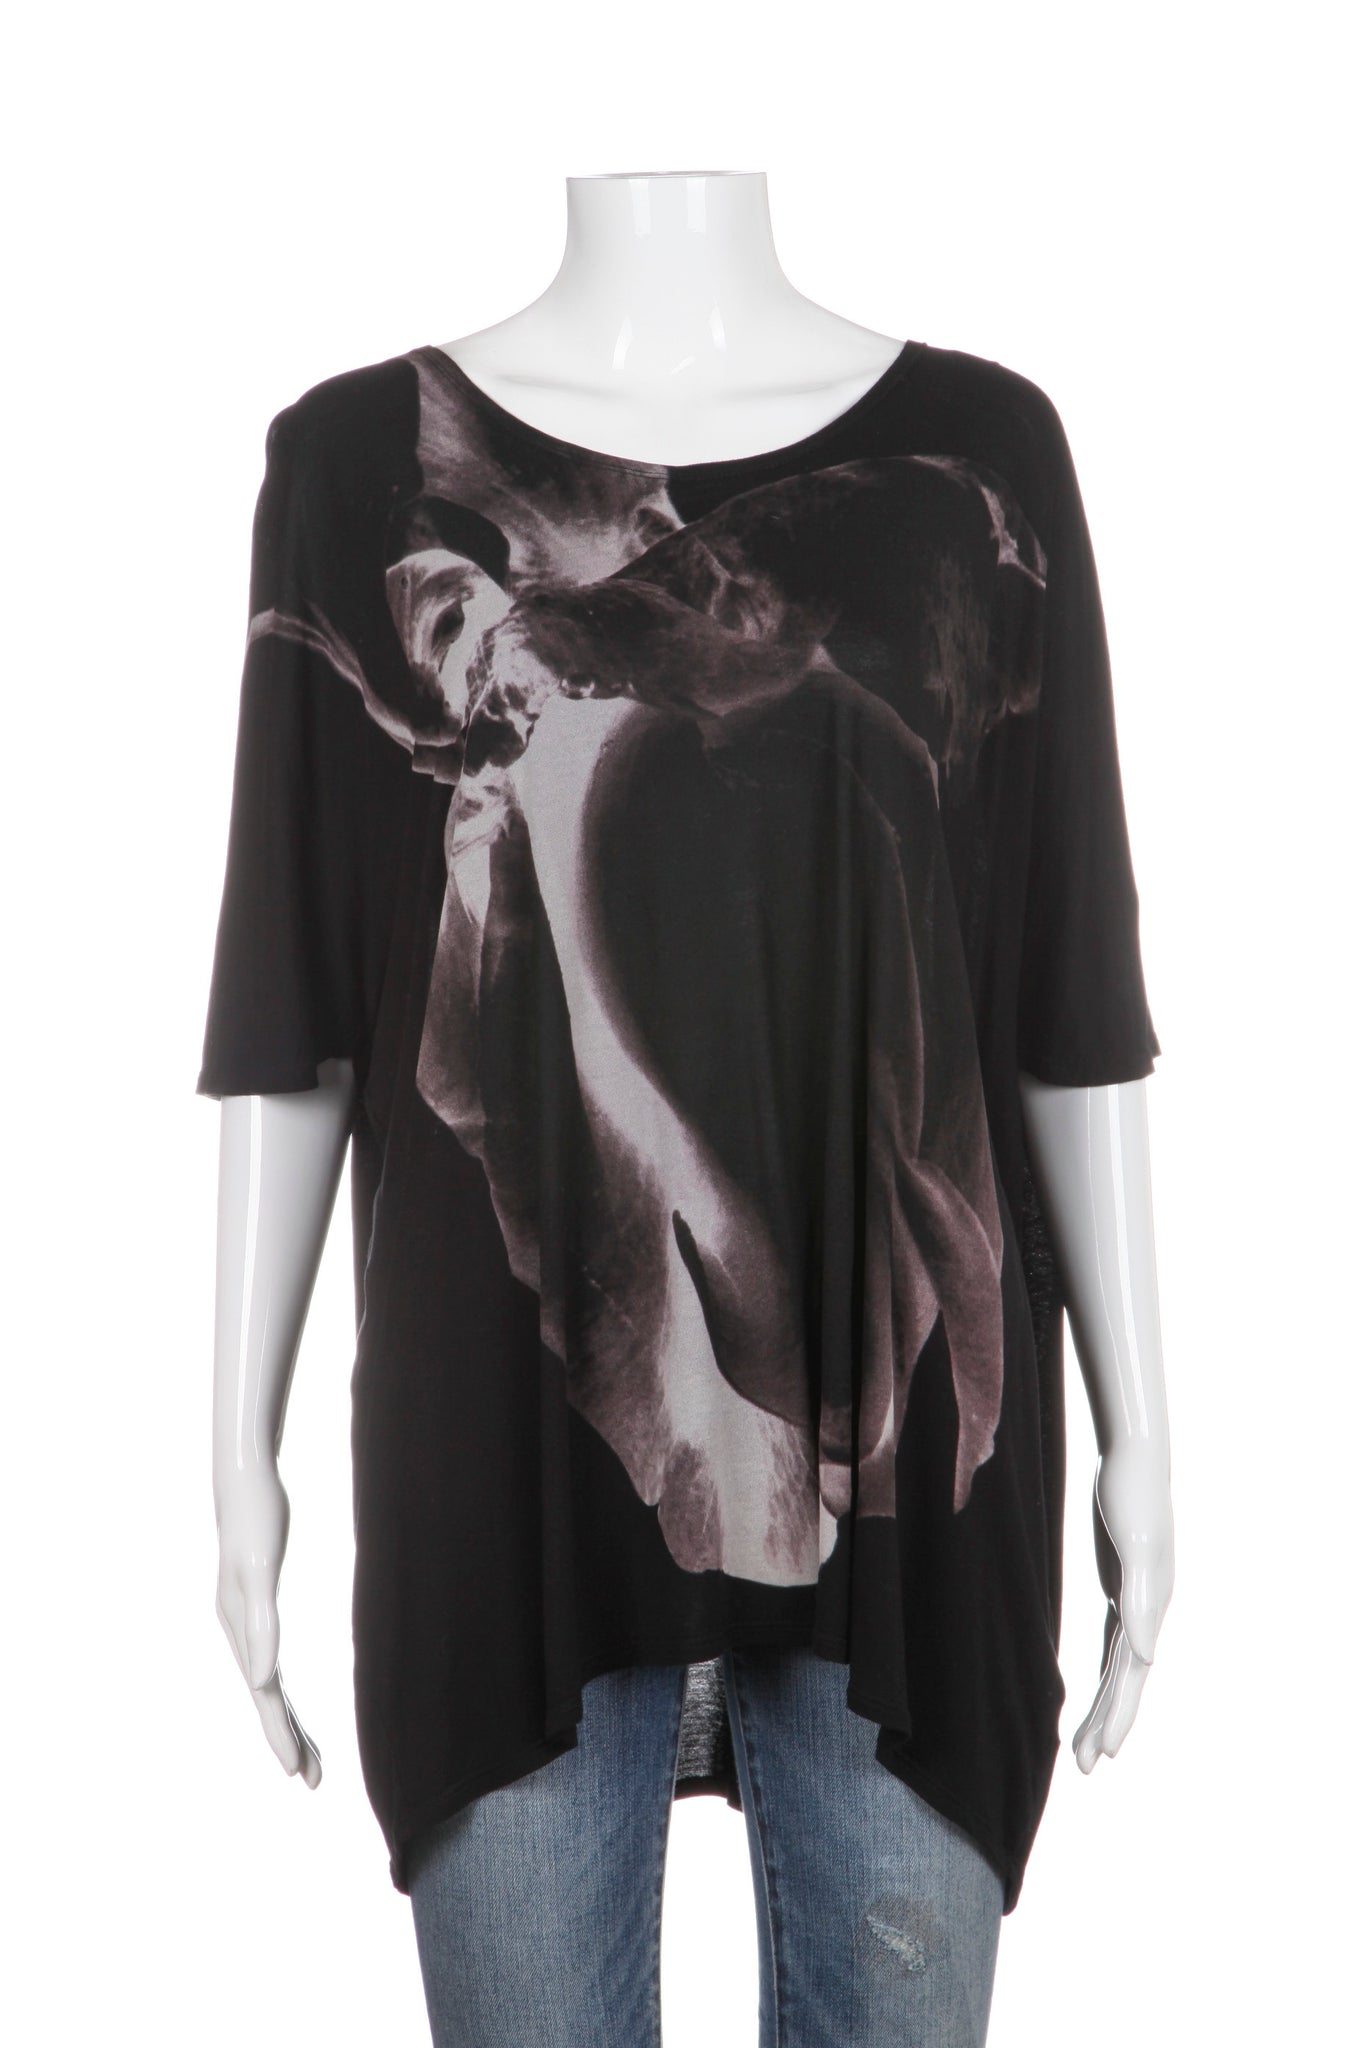 ALLSAINTS Oversized Top Black Grey Graphic Tee Size XS